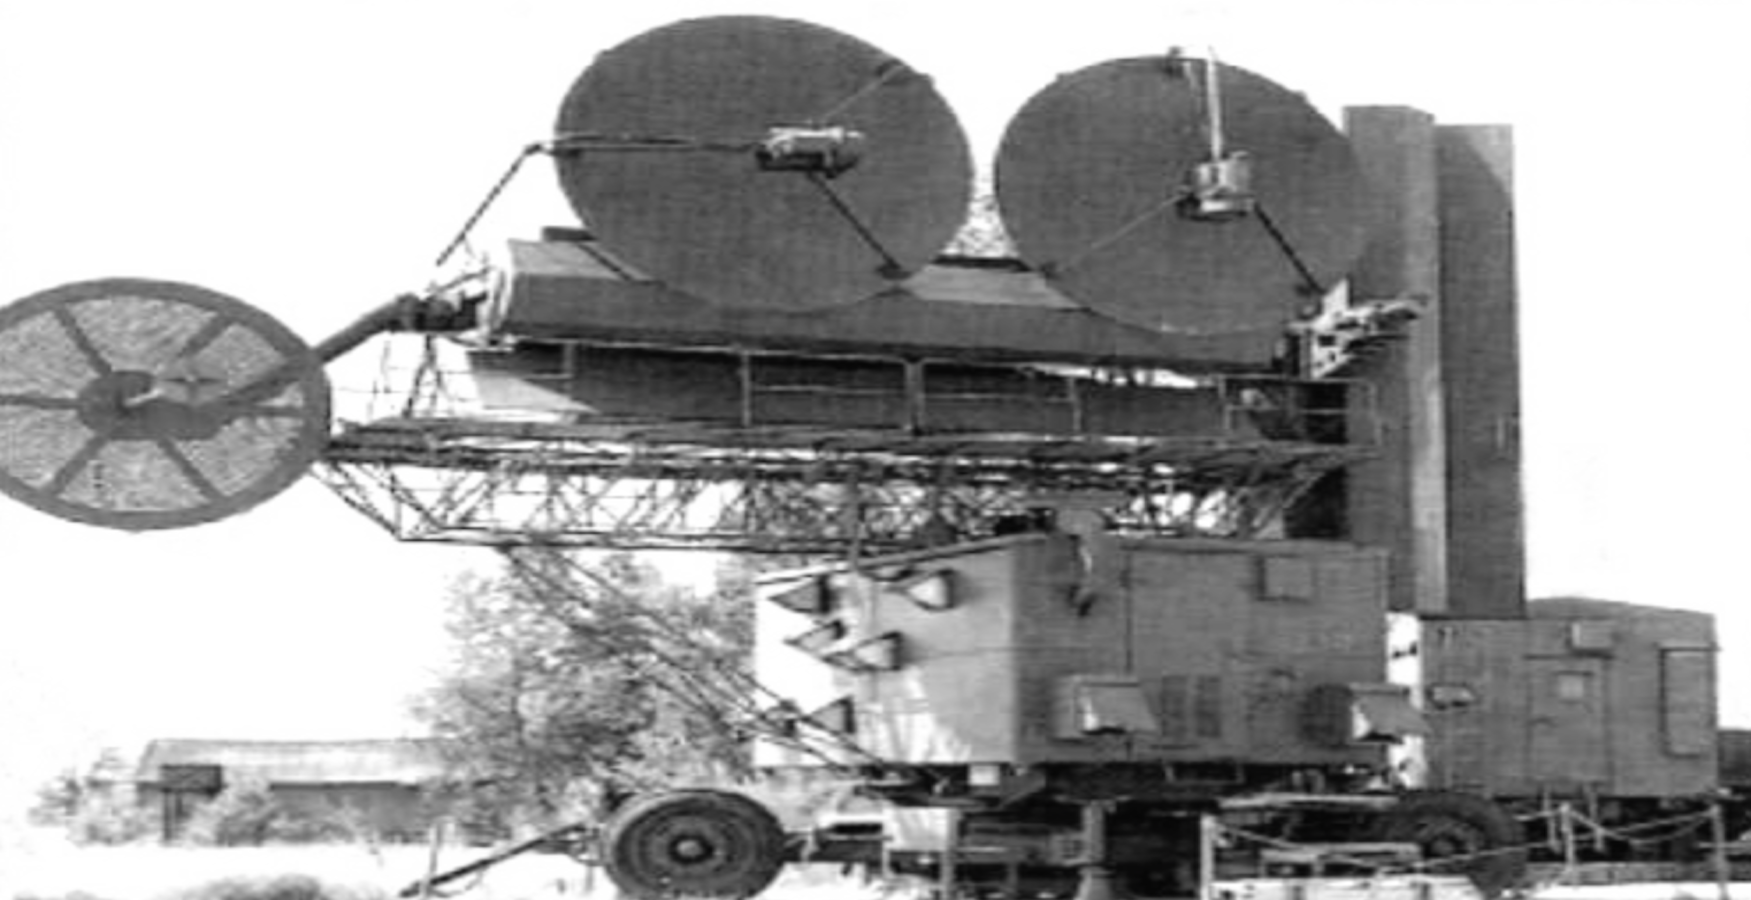 This was the former Soviet Union's (FSU) first air defensive weapon system employed during a  the Vietnam War